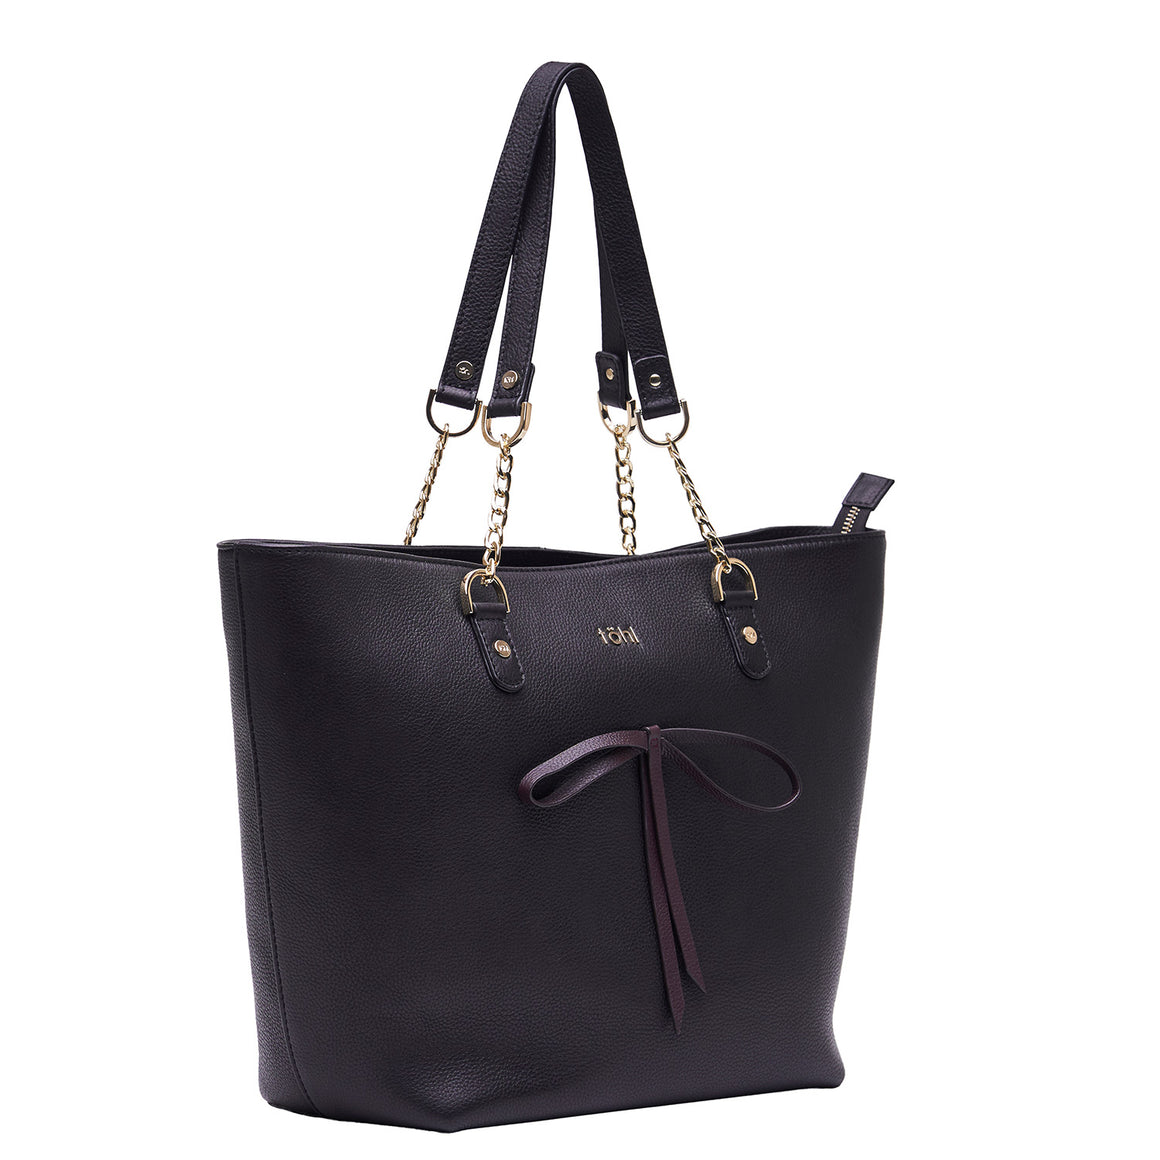 TT 0011 - TOHL WALLACE WOMEN'S TOTE BAG - BLACK